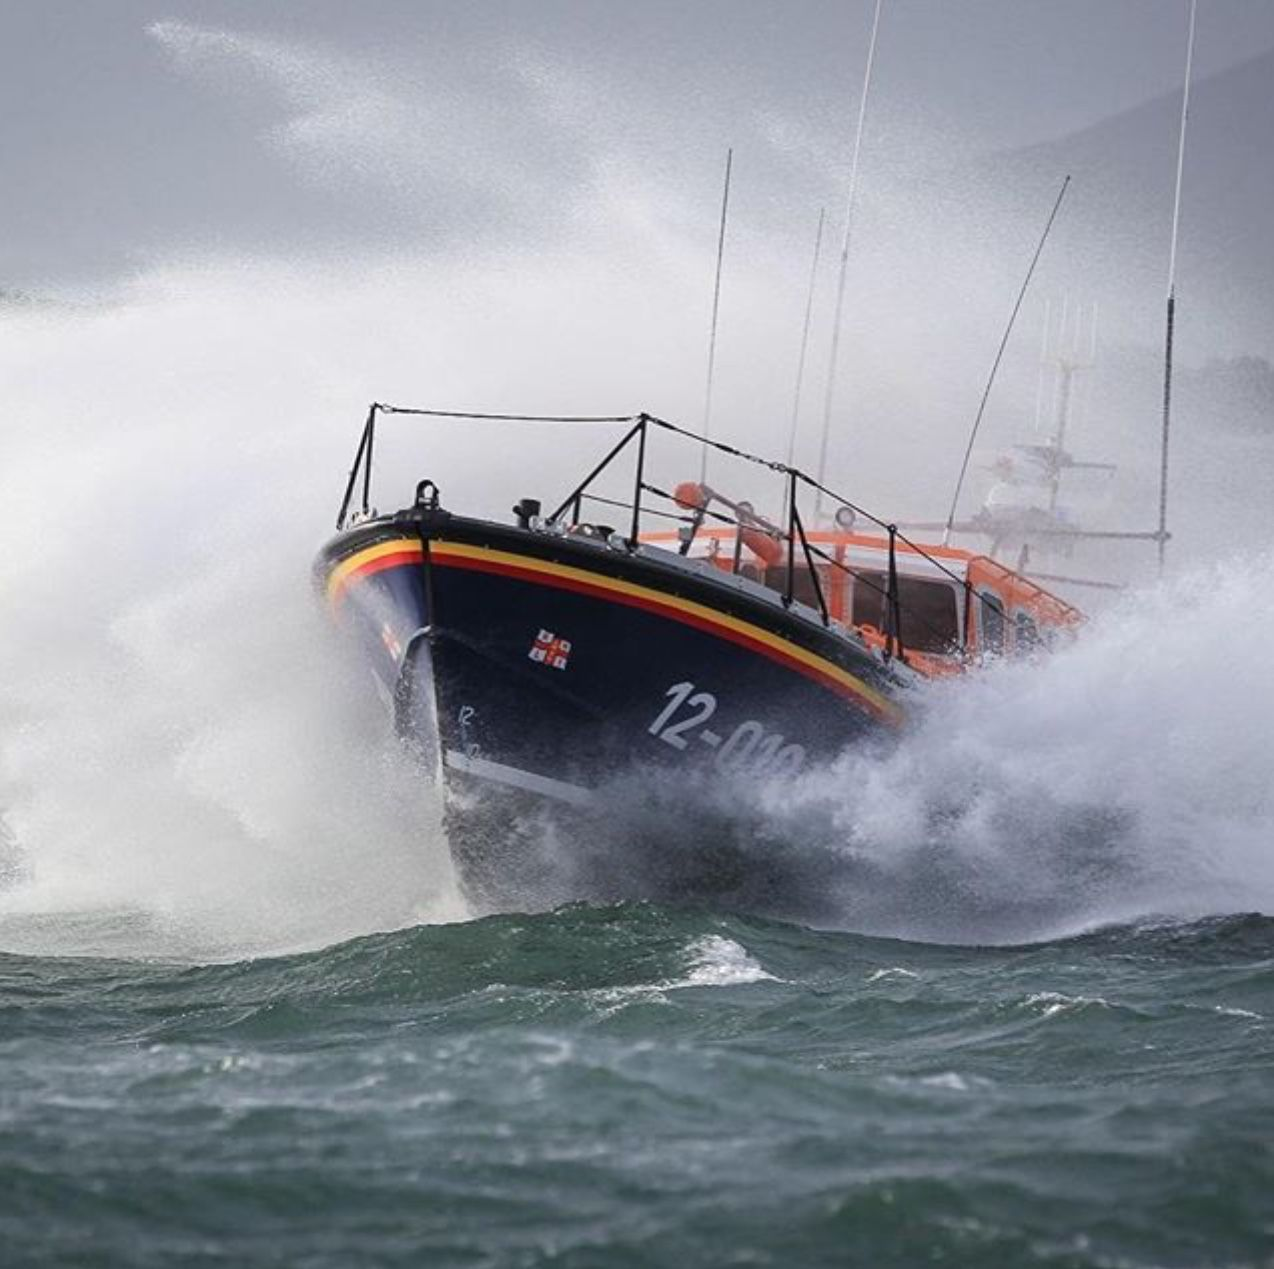 Boats in rough water & misc. image by Terry Perdew Pilot